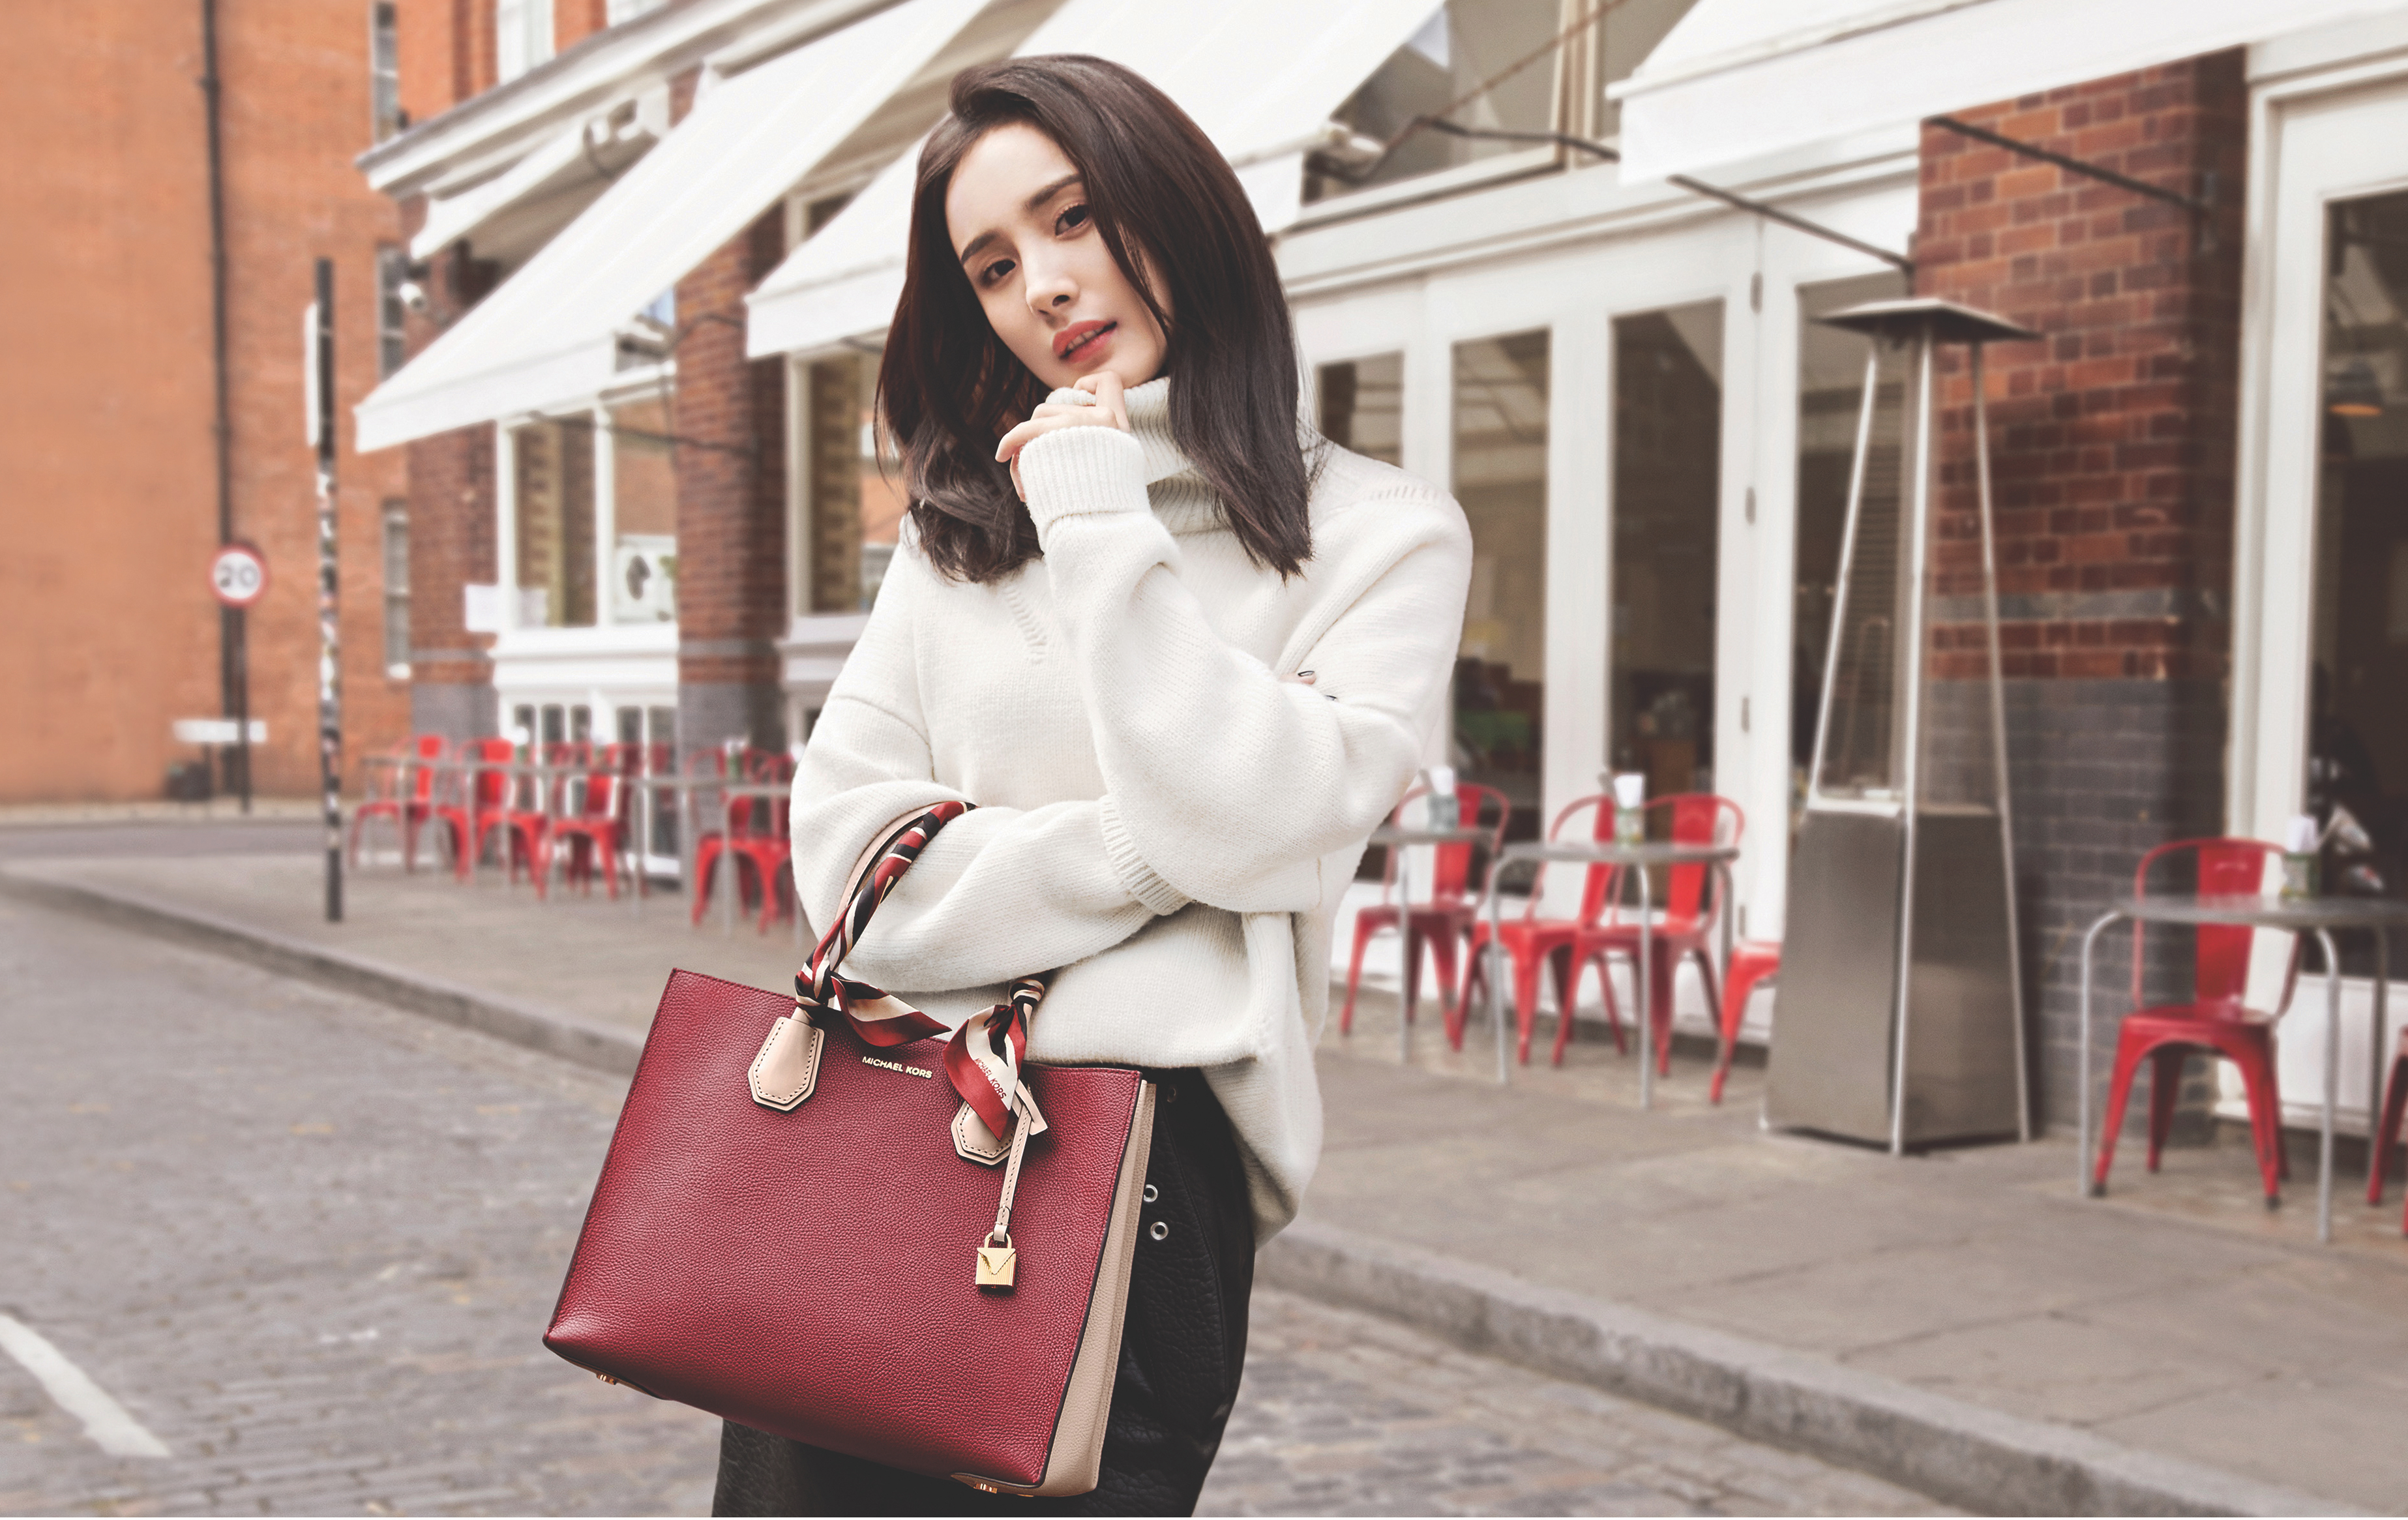 One of China's most popular actresses, Yang Mi, models a Mercer handbag from Michael Kors, exclusively available at DFS. The special collaboration with the duty free retailer launches Sept. 1st.